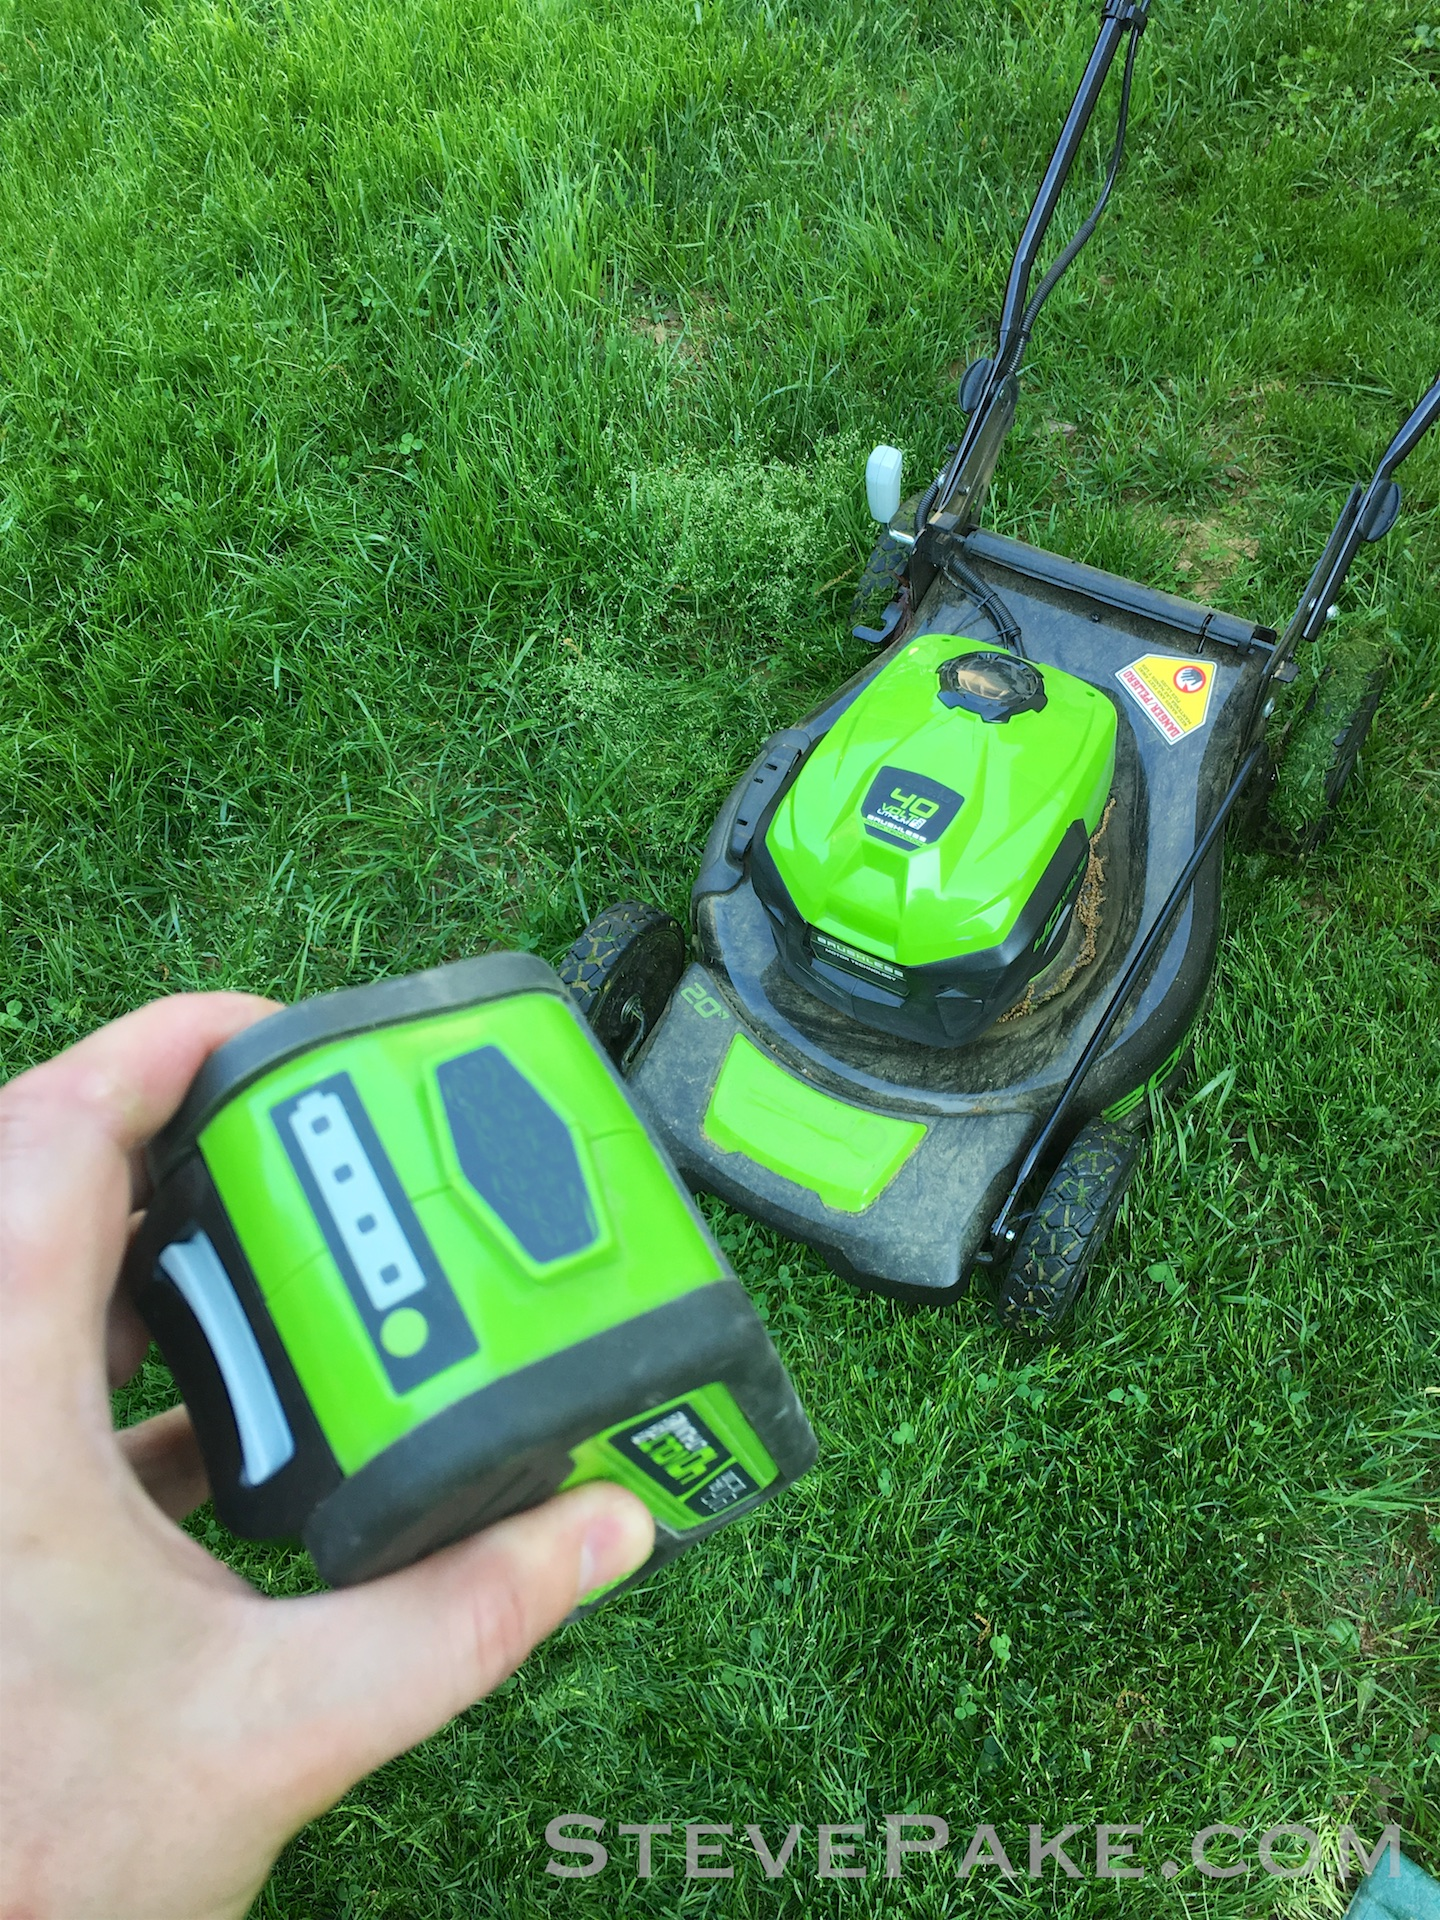 Dead battery and still plenty of lawn to mow! Well ****! >:-(